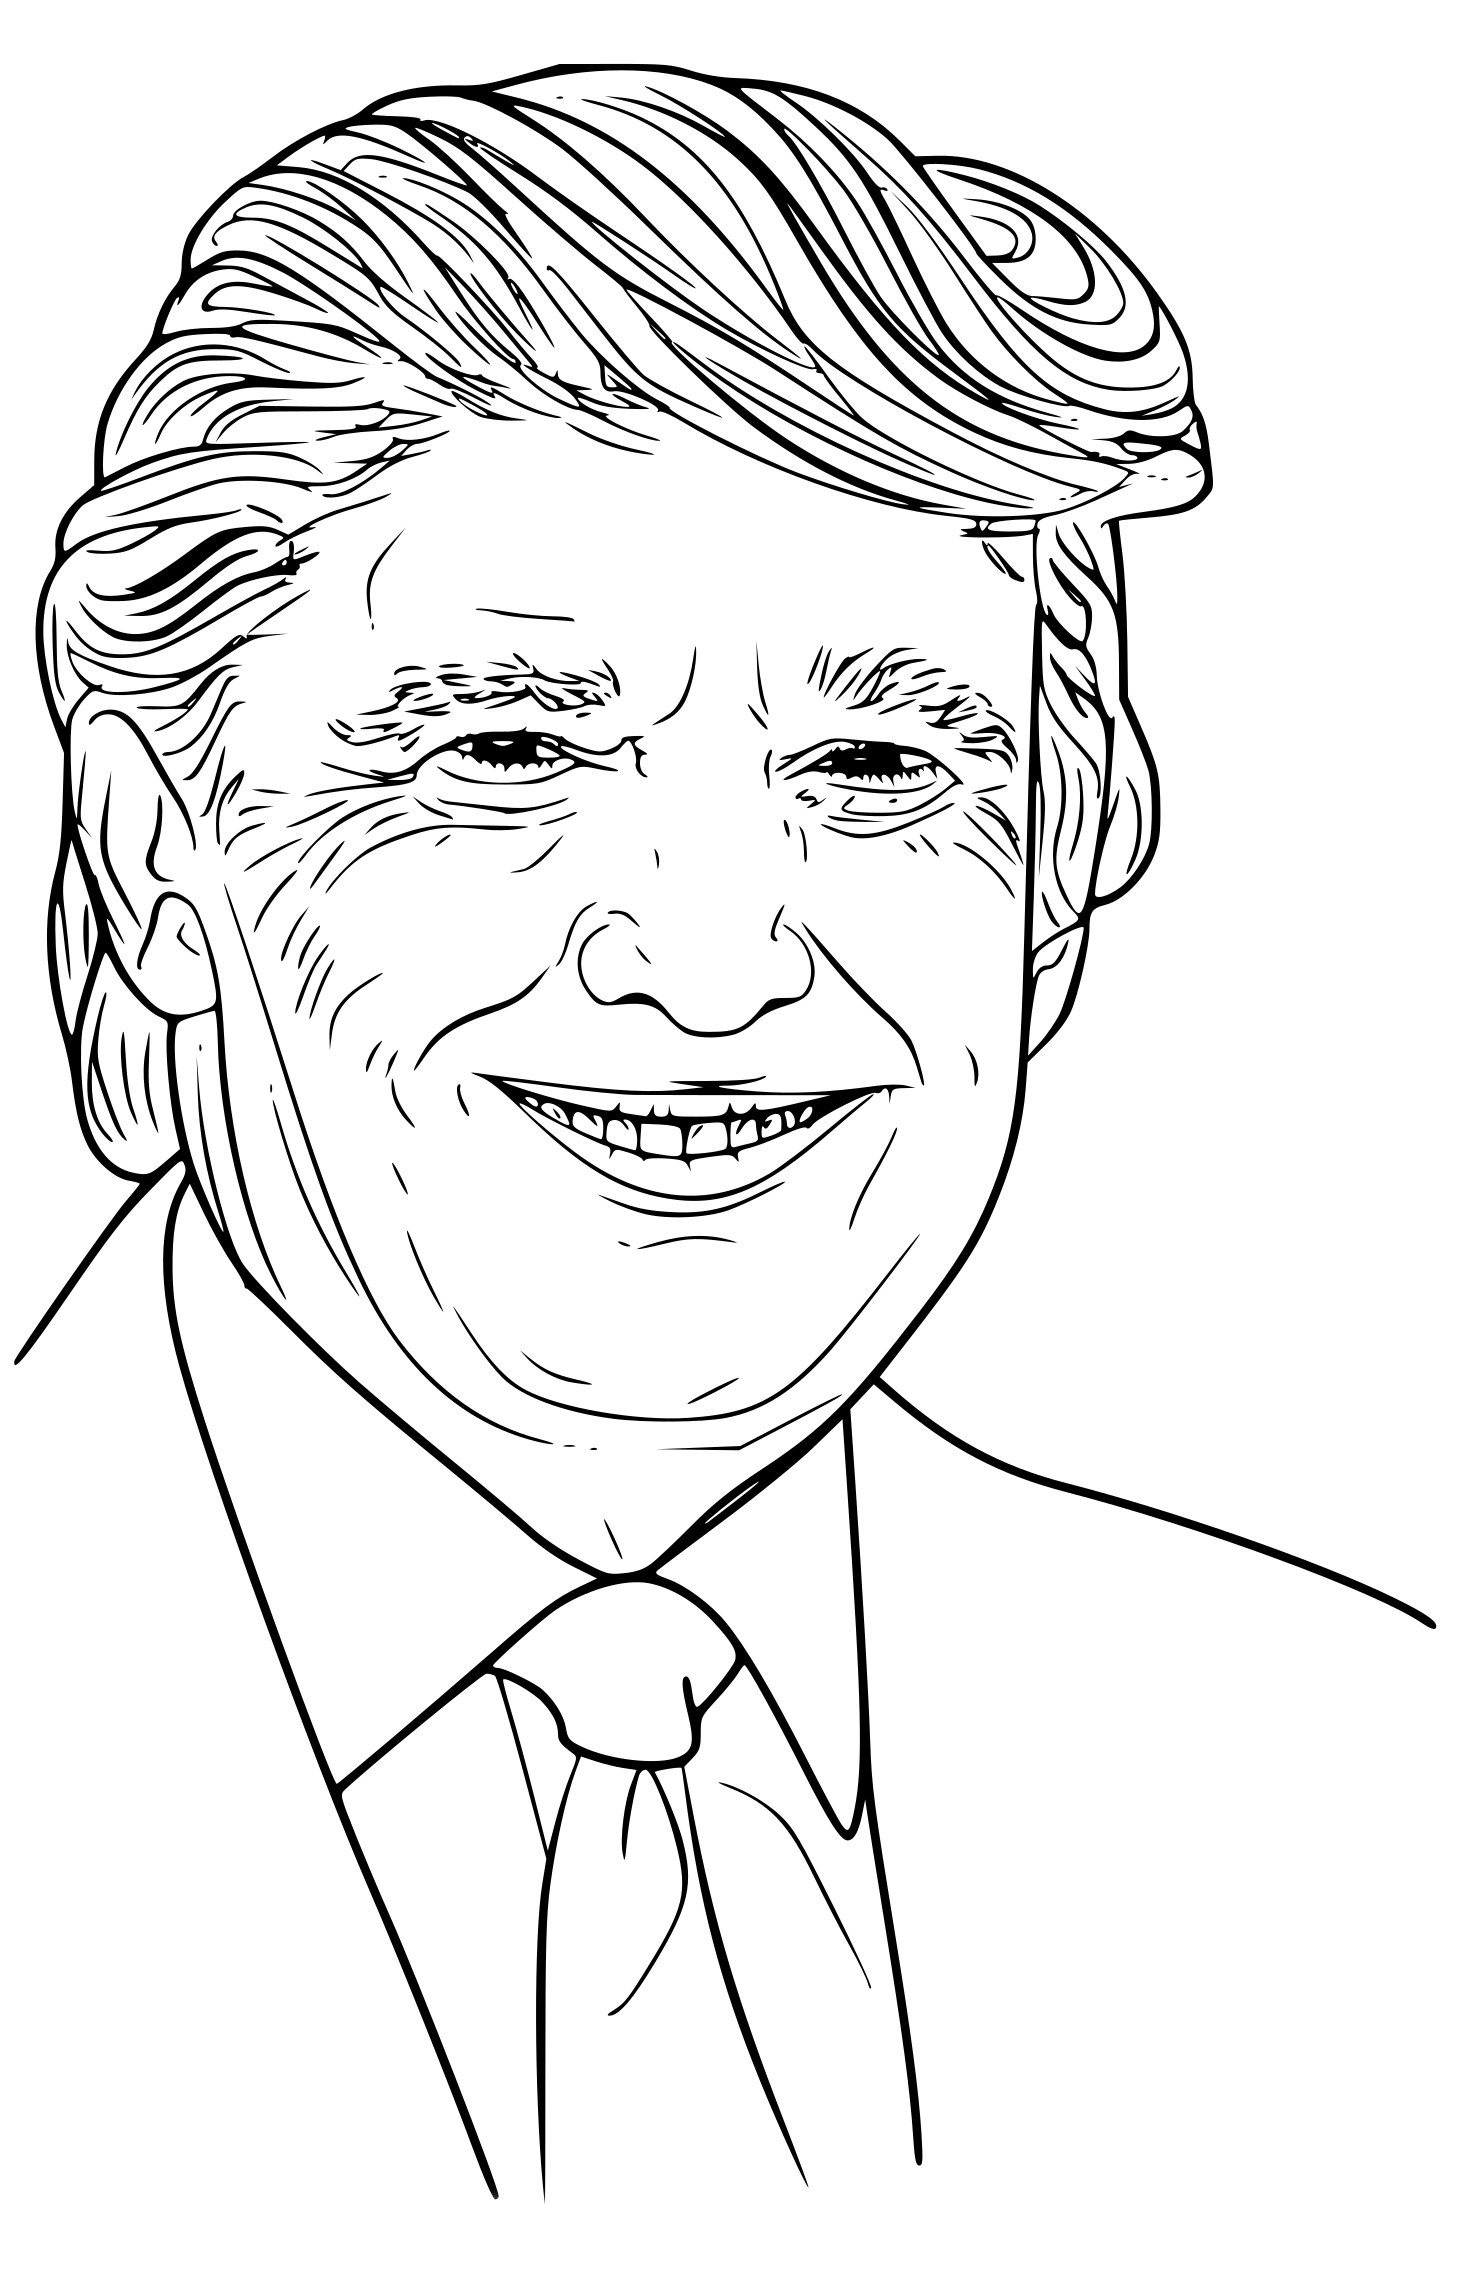 coloring page of donald trump trump coloring pages at getcoloringscom free printable coloring trump page donald of